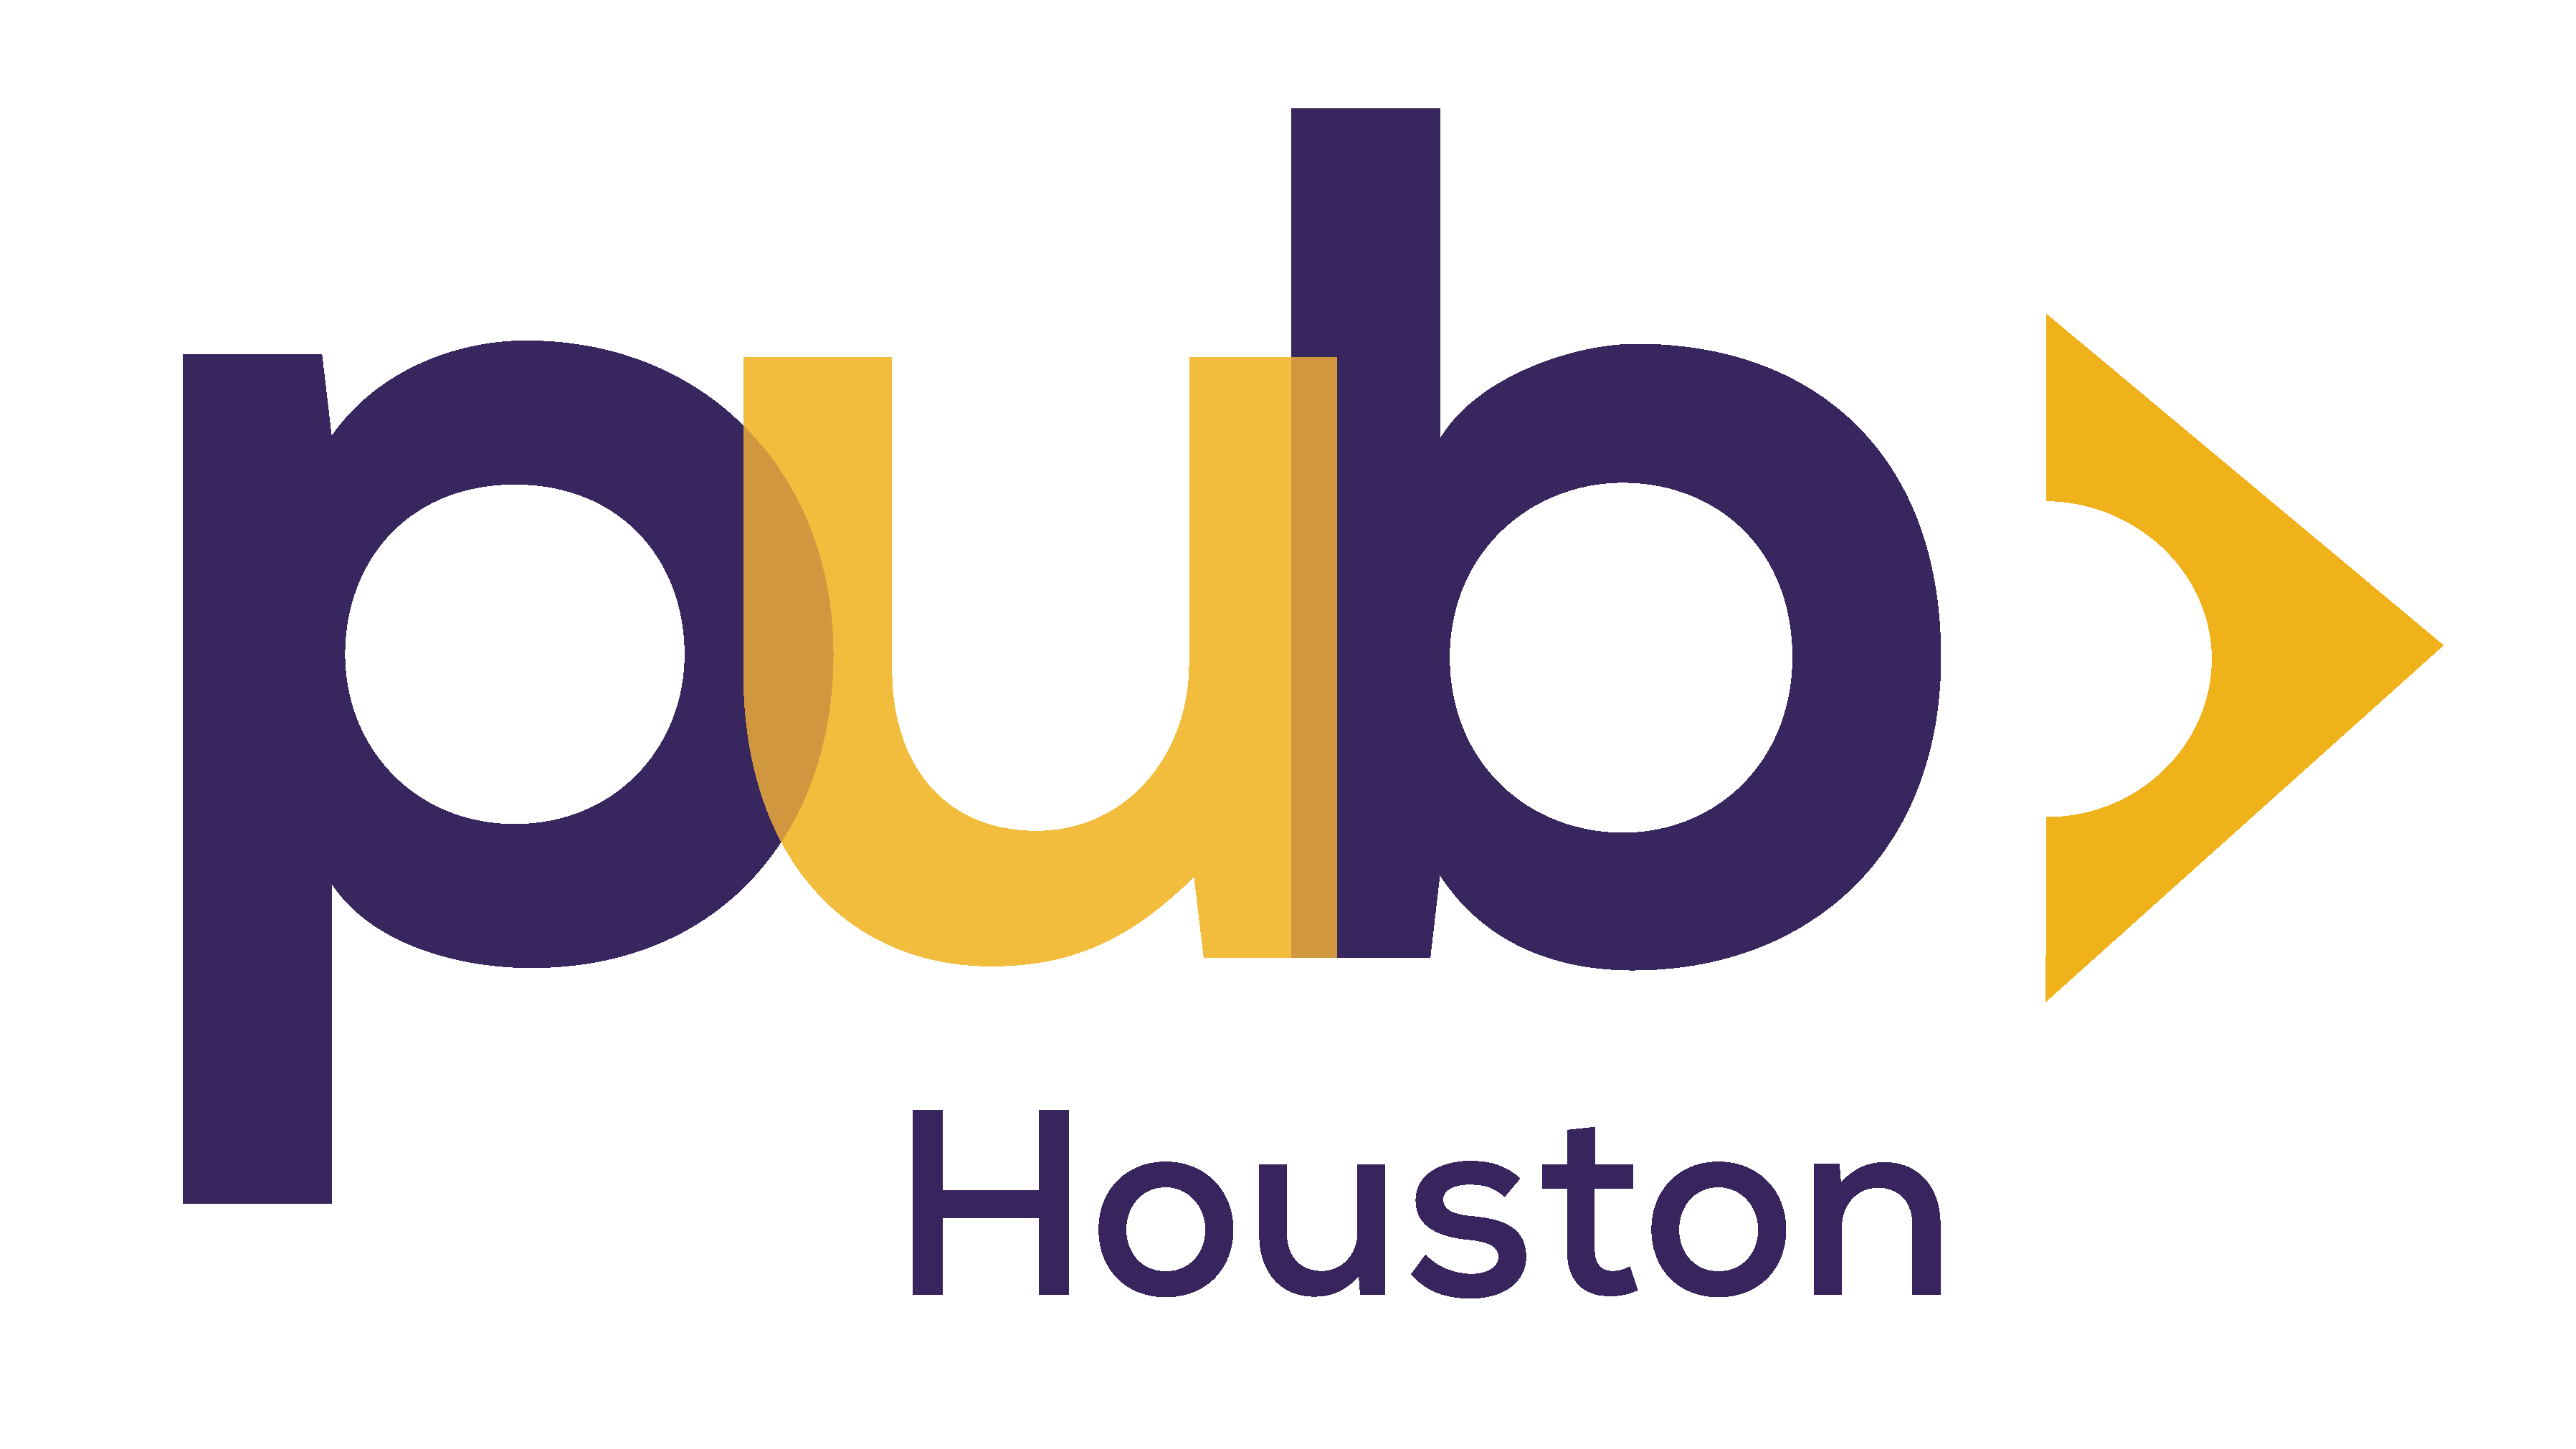 Pub Houston